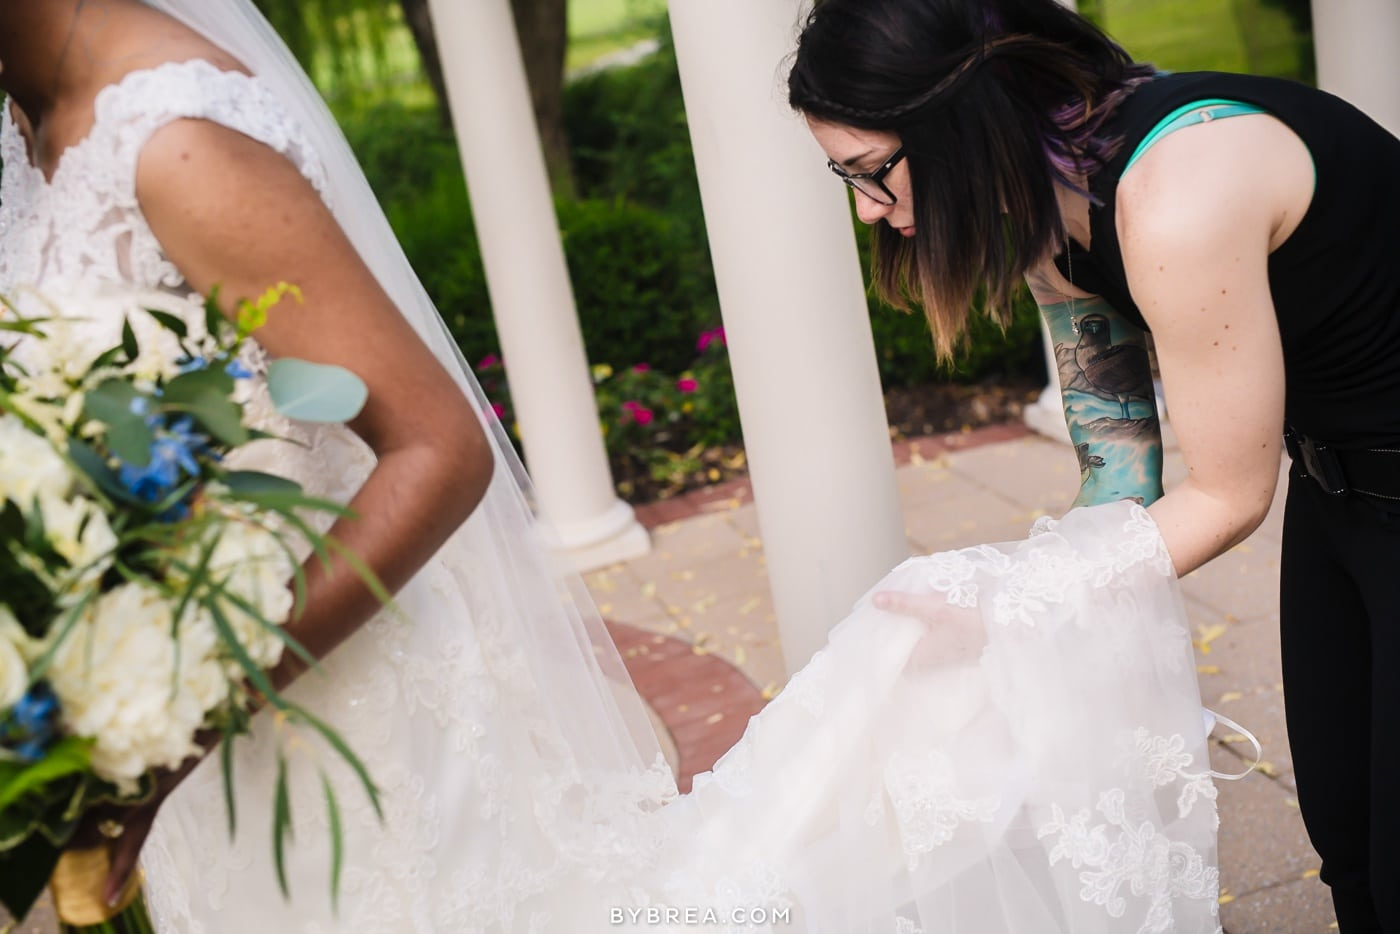 photography-by-brea-best-baltimore-wedding-photographer-bts_0796